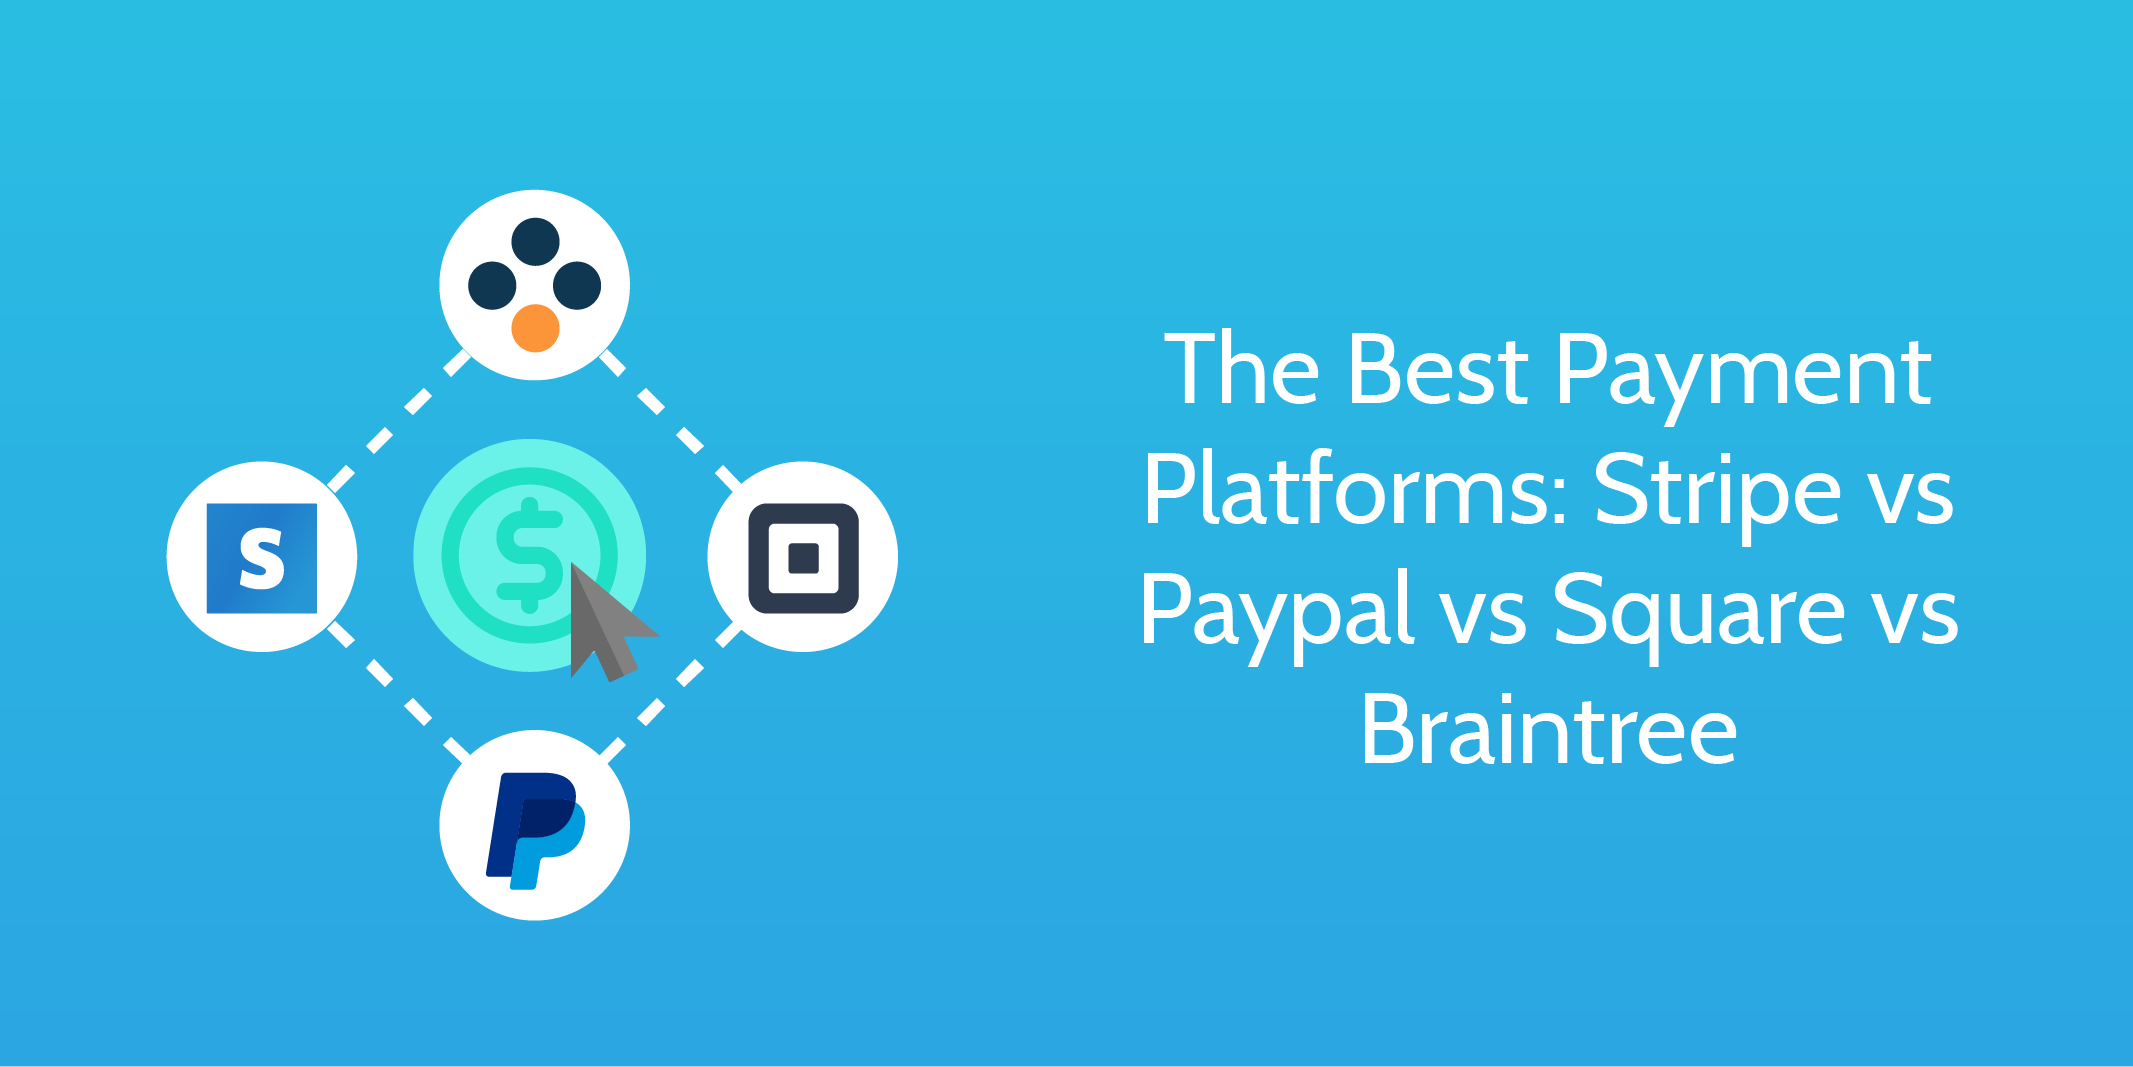 stripe_vs_paypal_vs_square_vs_braintree best payment platform